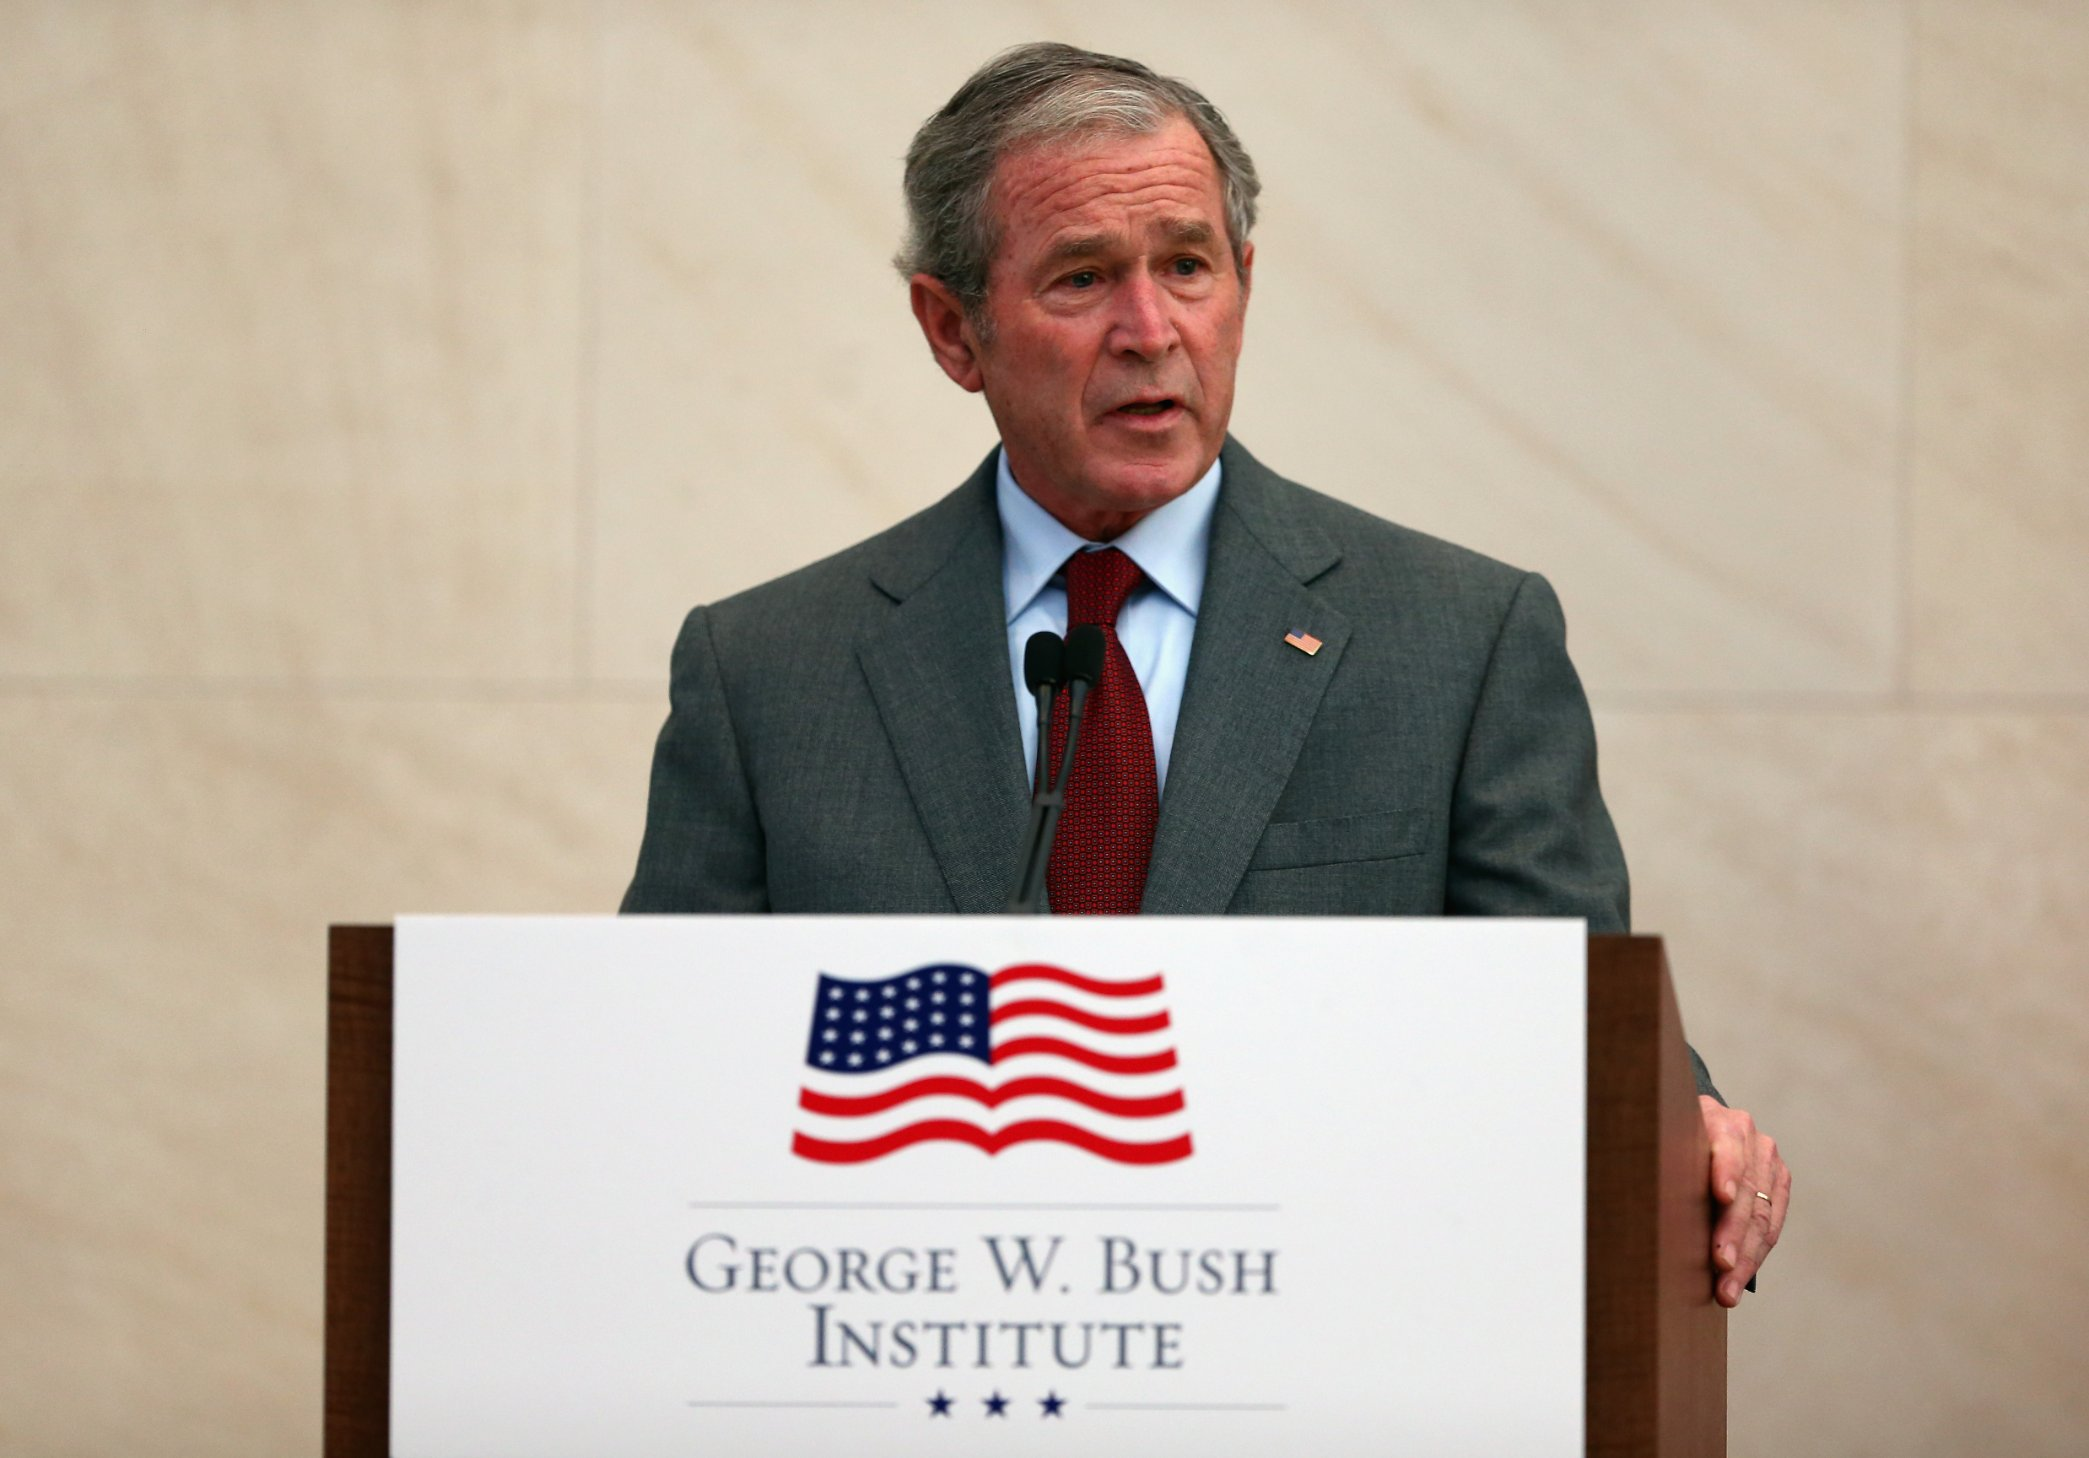 leadership style of george w bush George w bush: a transformational leader at midterm authors authors and affiliations stanley a renshon chapter 12 downloads part of.